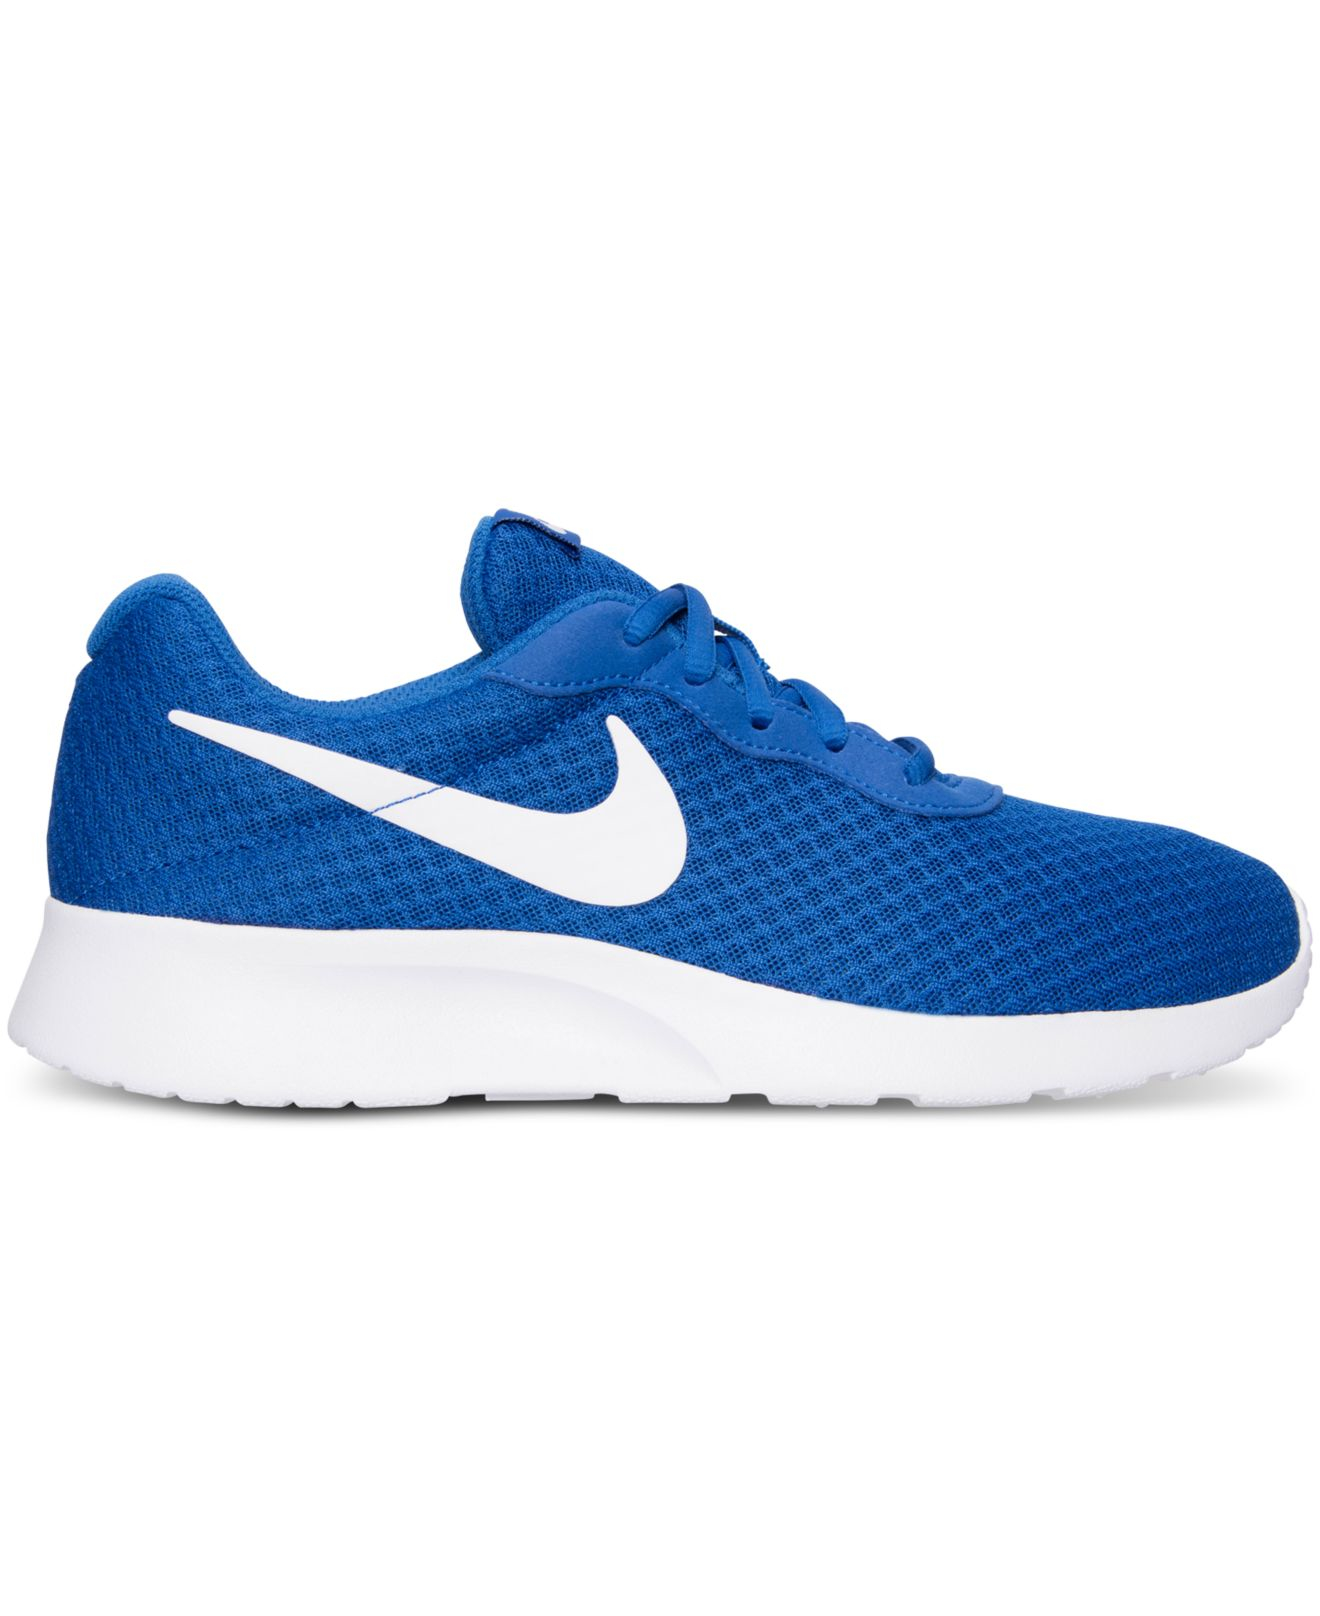 nike tanjun blue hair 3917116bb6d2